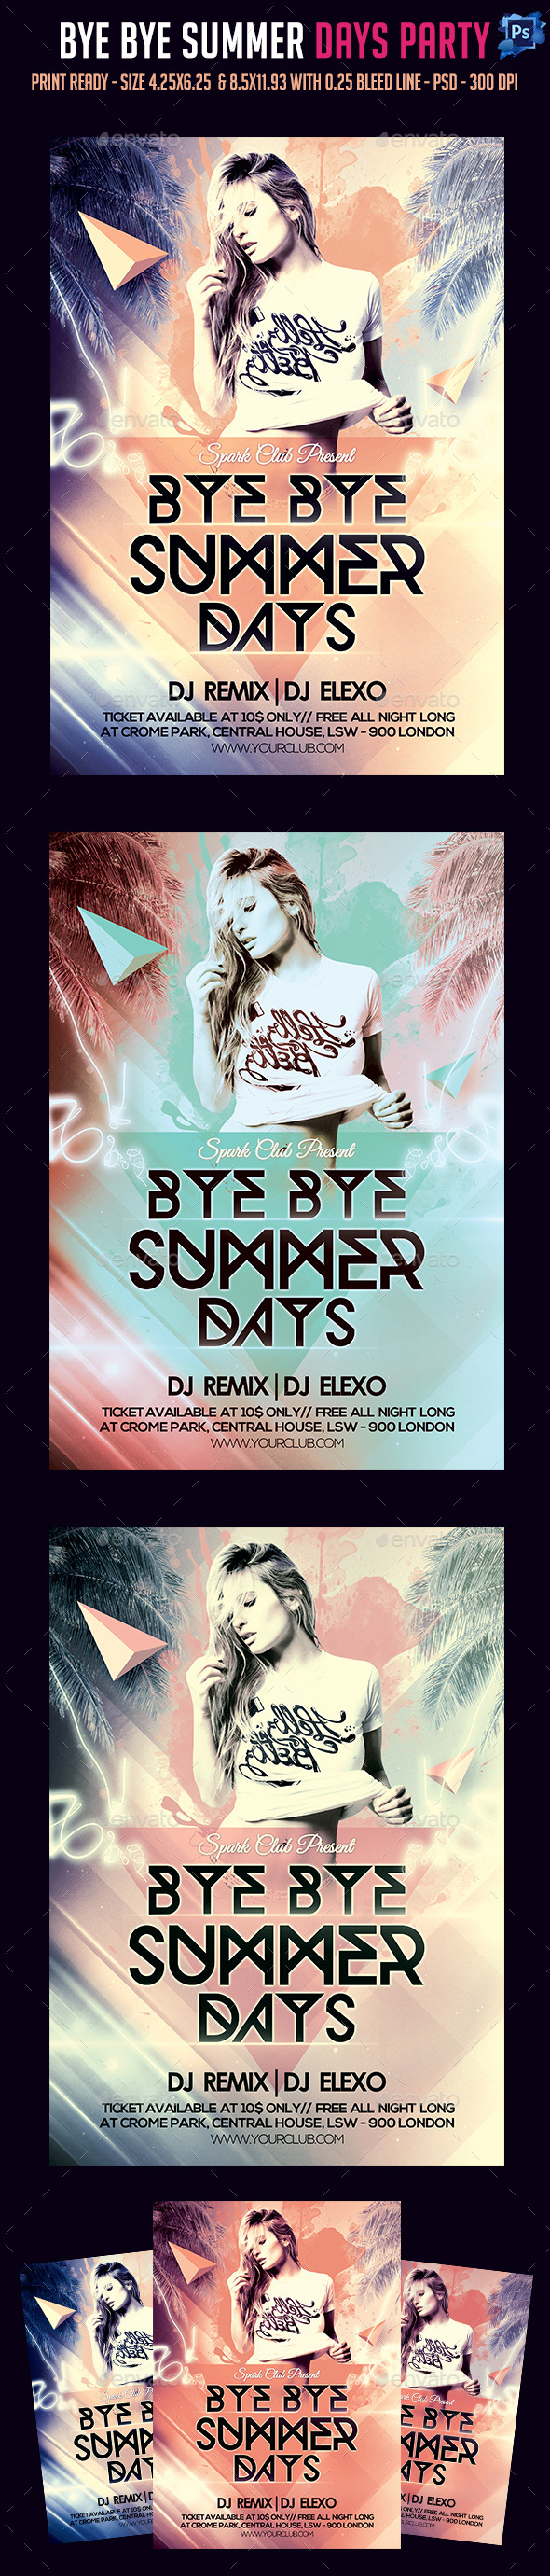 Bye Bye Summer Days Party Flyer - Clubs & Parties Events